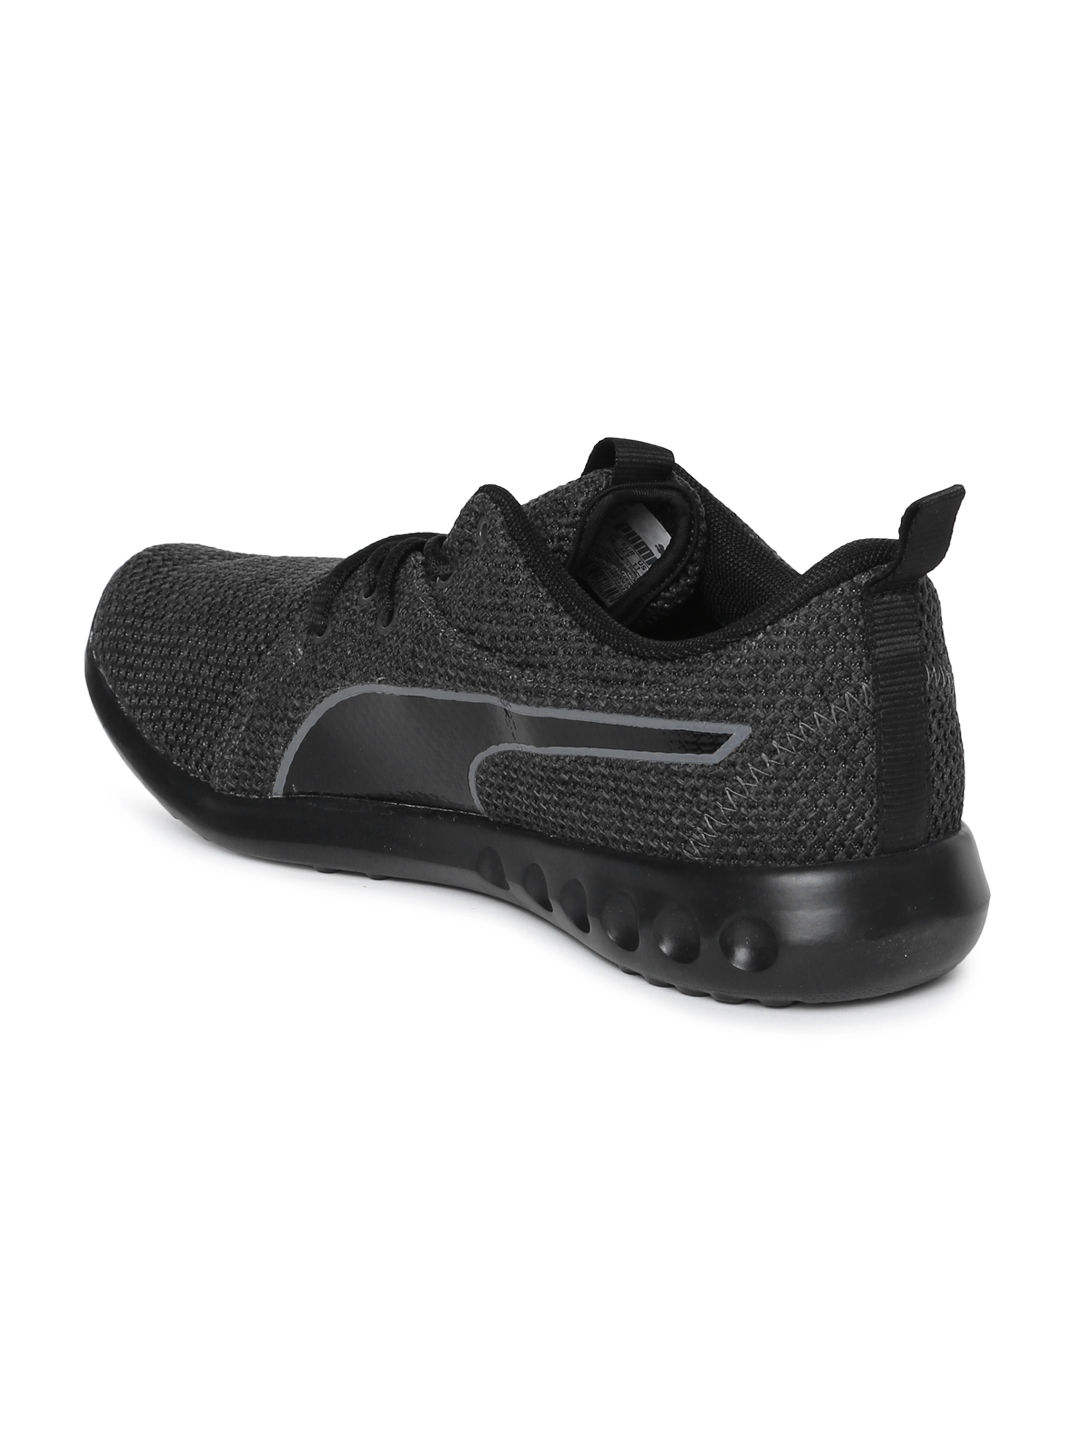 a5a4960cfac7 Buy Puma Men Black Carson 2 IDP Running Shoes - Sports Shoes for Men ...